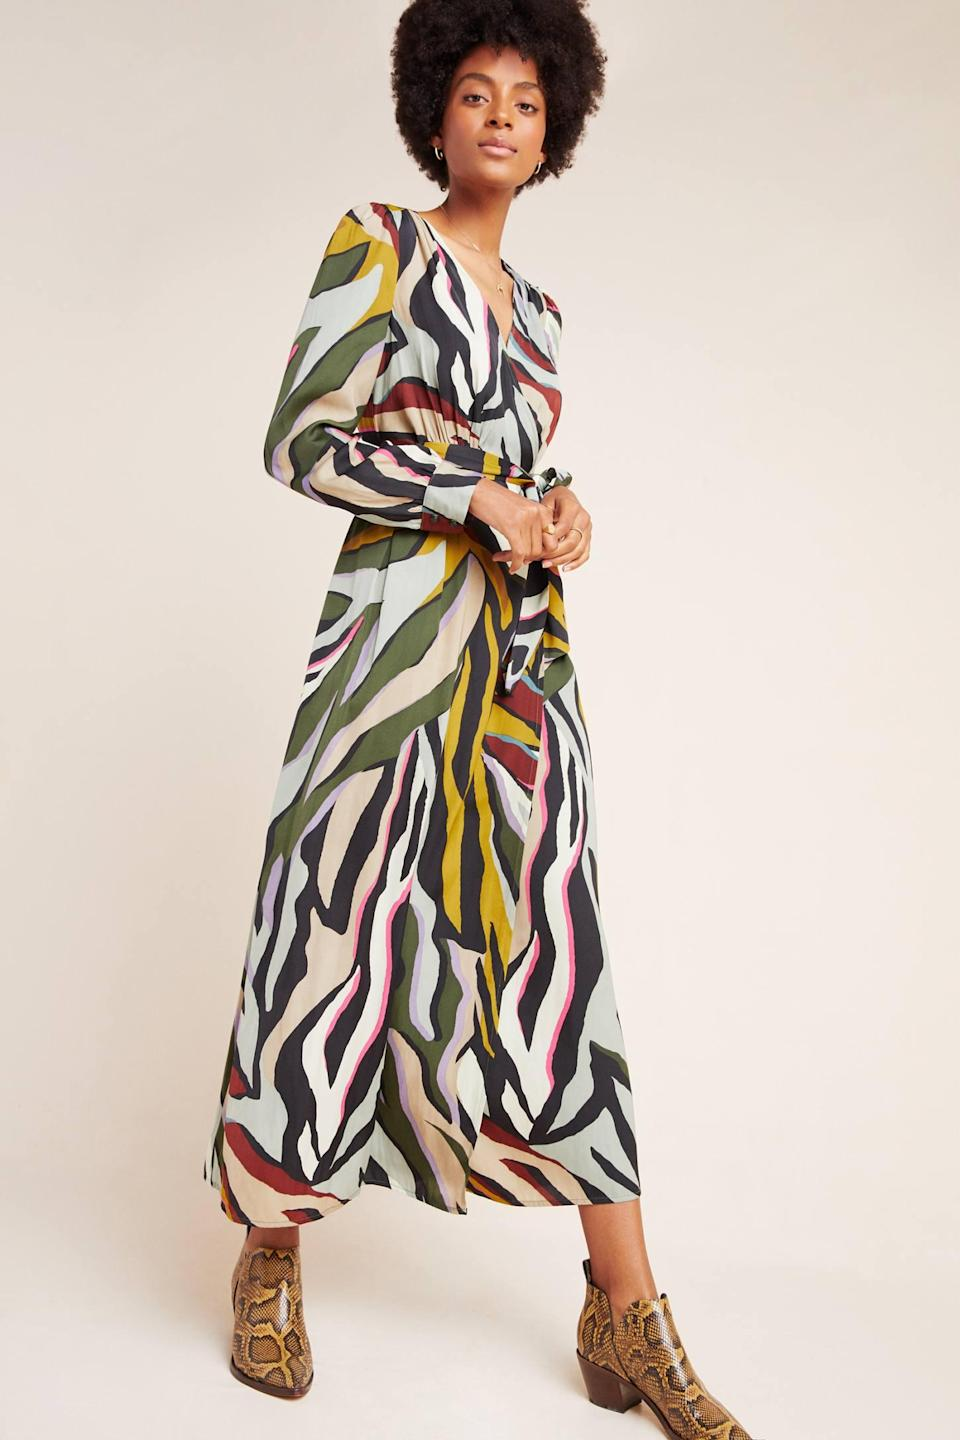 """<p><strong>Corey Lynn Calter</strong></p><p>anthropologie.com</p><p><strong>$198.00</strong></p><p><a href=""""https://go.redirectingat.com?id=74968X1596630&url=https%3A%2F%2Fwww.anthropologie.com%2Fshop%2Fcorey-lynn-calter-zebra-wrap-dress&sref=http%3A%2F%2Fwww.townandcountrymag.com%2Fstyle%2Ffashion-trends%2Fg26522706%2Fbest-dresses-for-older-women%2F"""" rel=""""nofollow noopener"""" target=""""_blank"""" data-ylk=""""slk:Shop Now"""" class=""""link rapid-noclick-resp"""">Shop Now</a></p><p>Modest doesn't have to mean boring: case in point, this artsy patterned dress with long sleeves, and a maxi hem. </p>"""